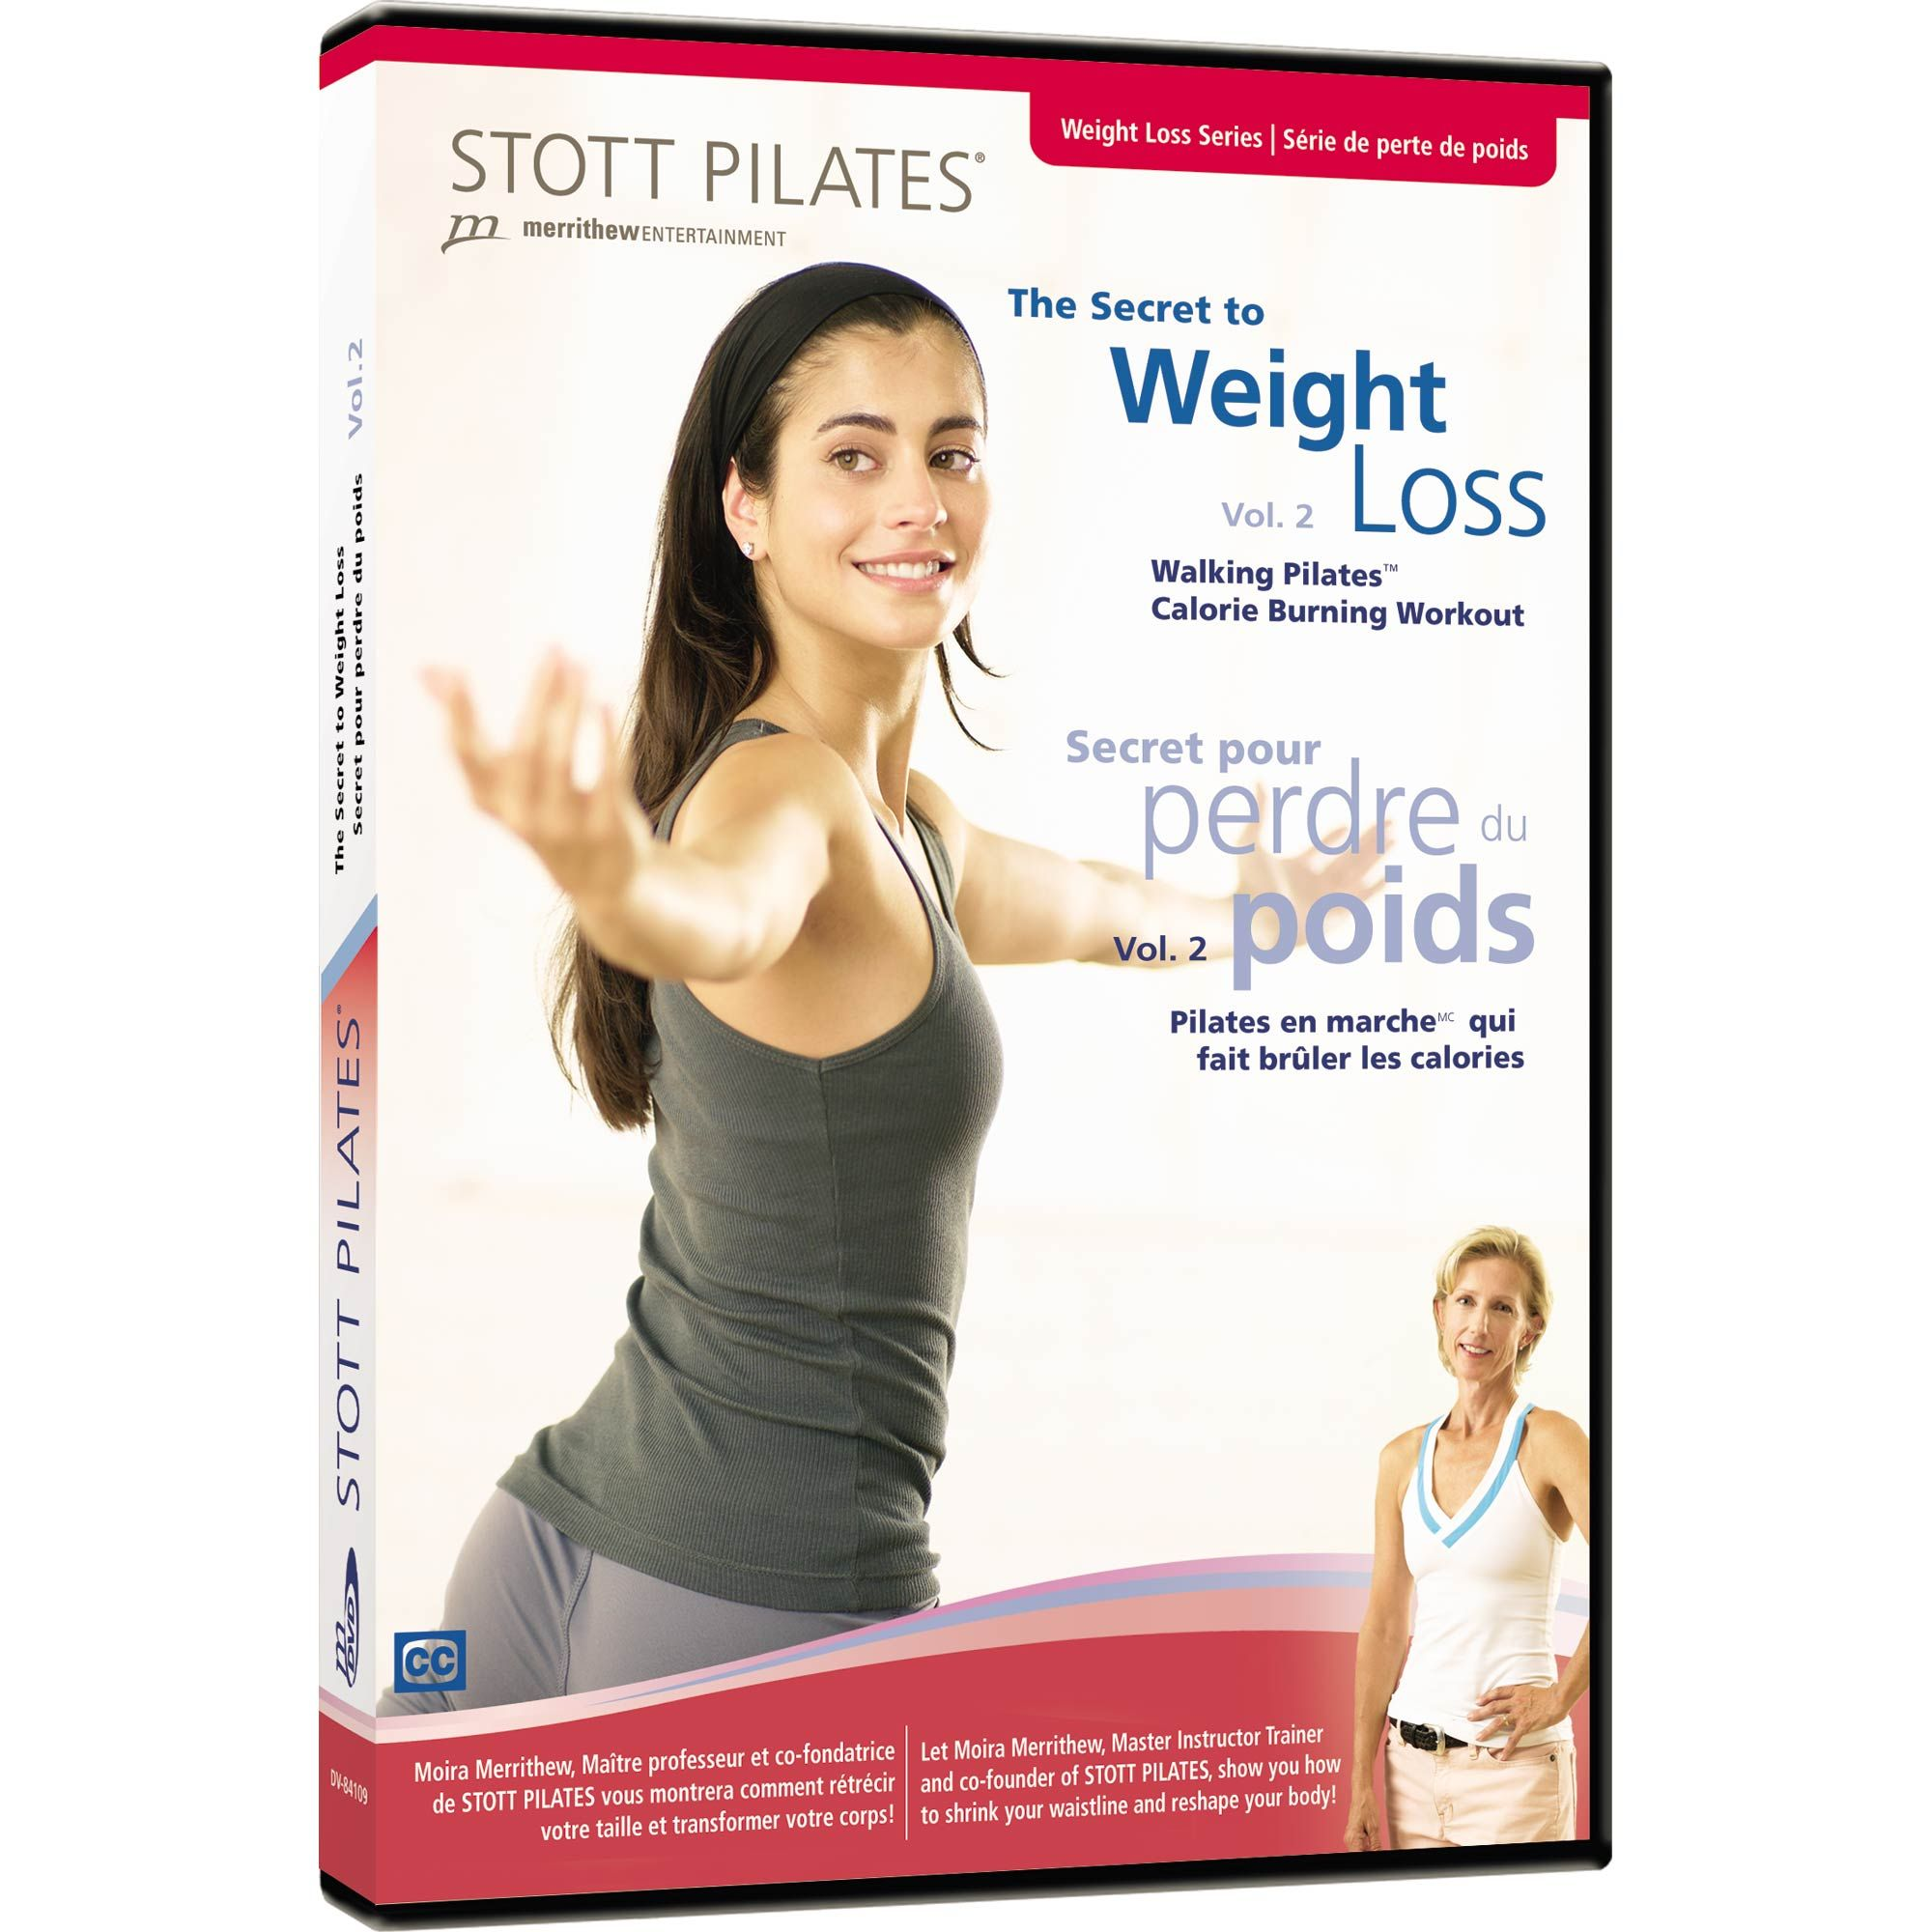 The secret pilates dvd program